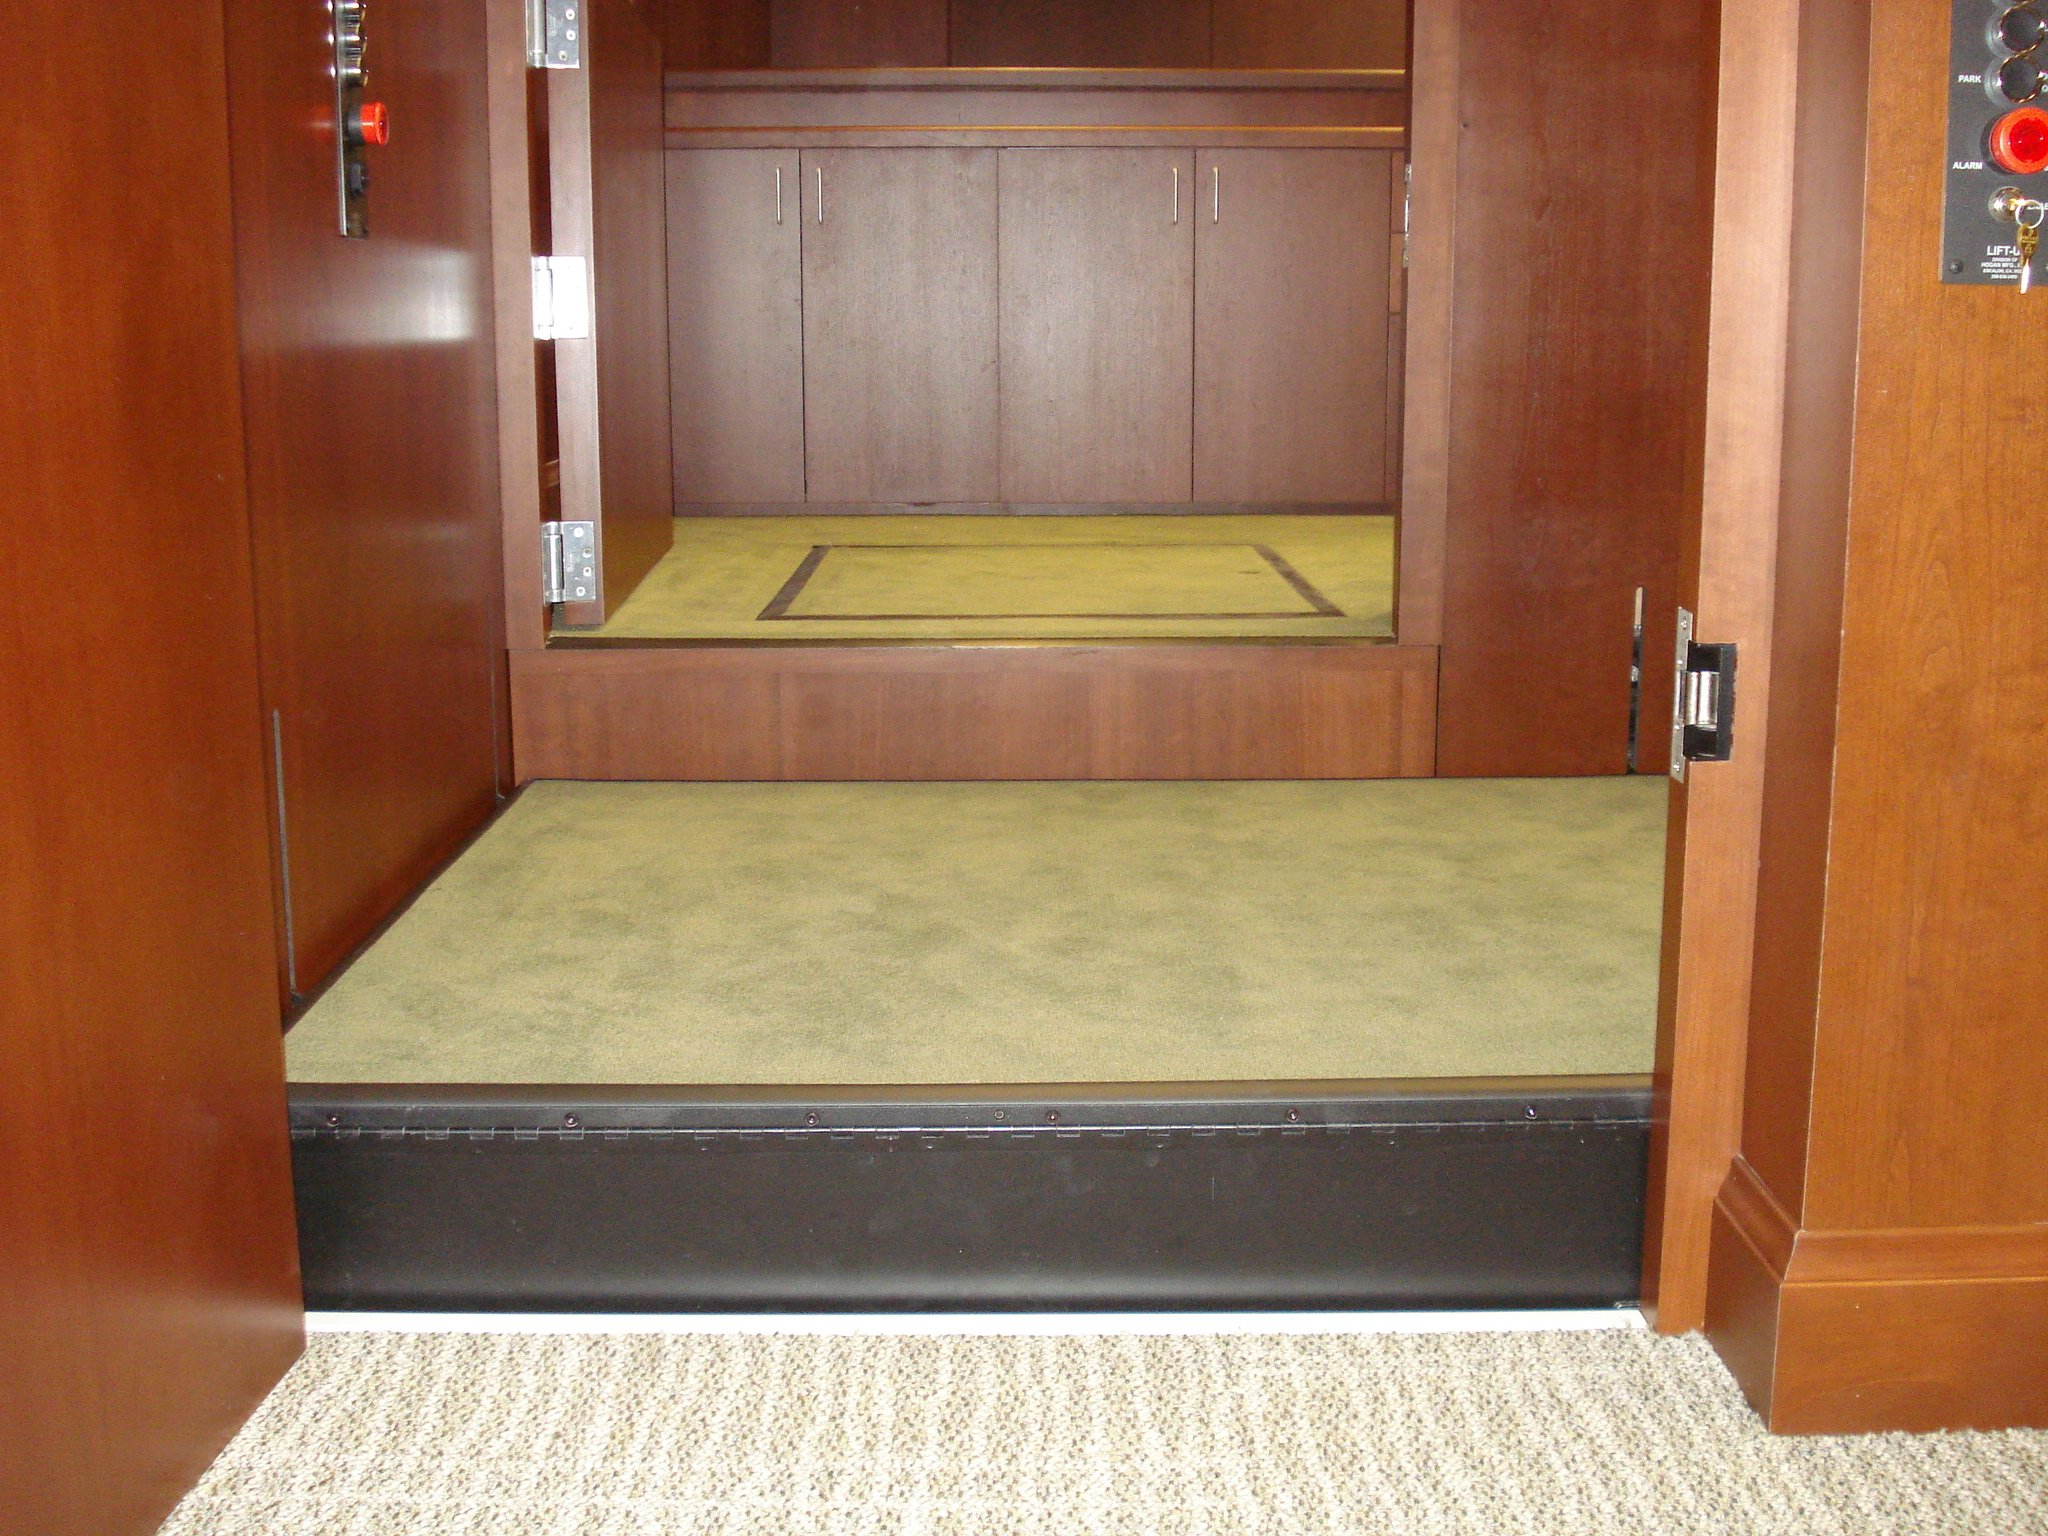 Ground level view of the lift platform at the witness or intermediate level Both doors are openened allowing ambulatory access to the witness stand and judge's bench. Lift is readily available and independently operable.